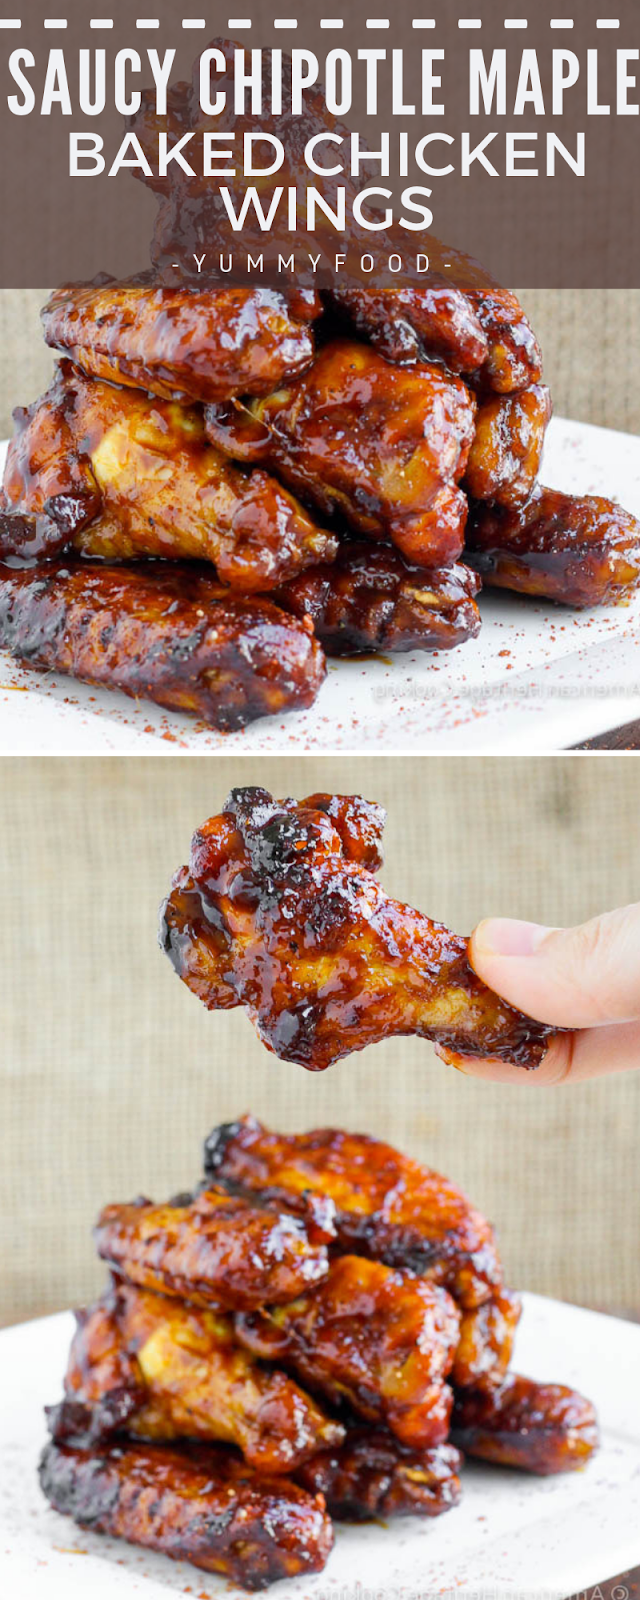 Saucy Chipotle Maple Baked Poultry Wings